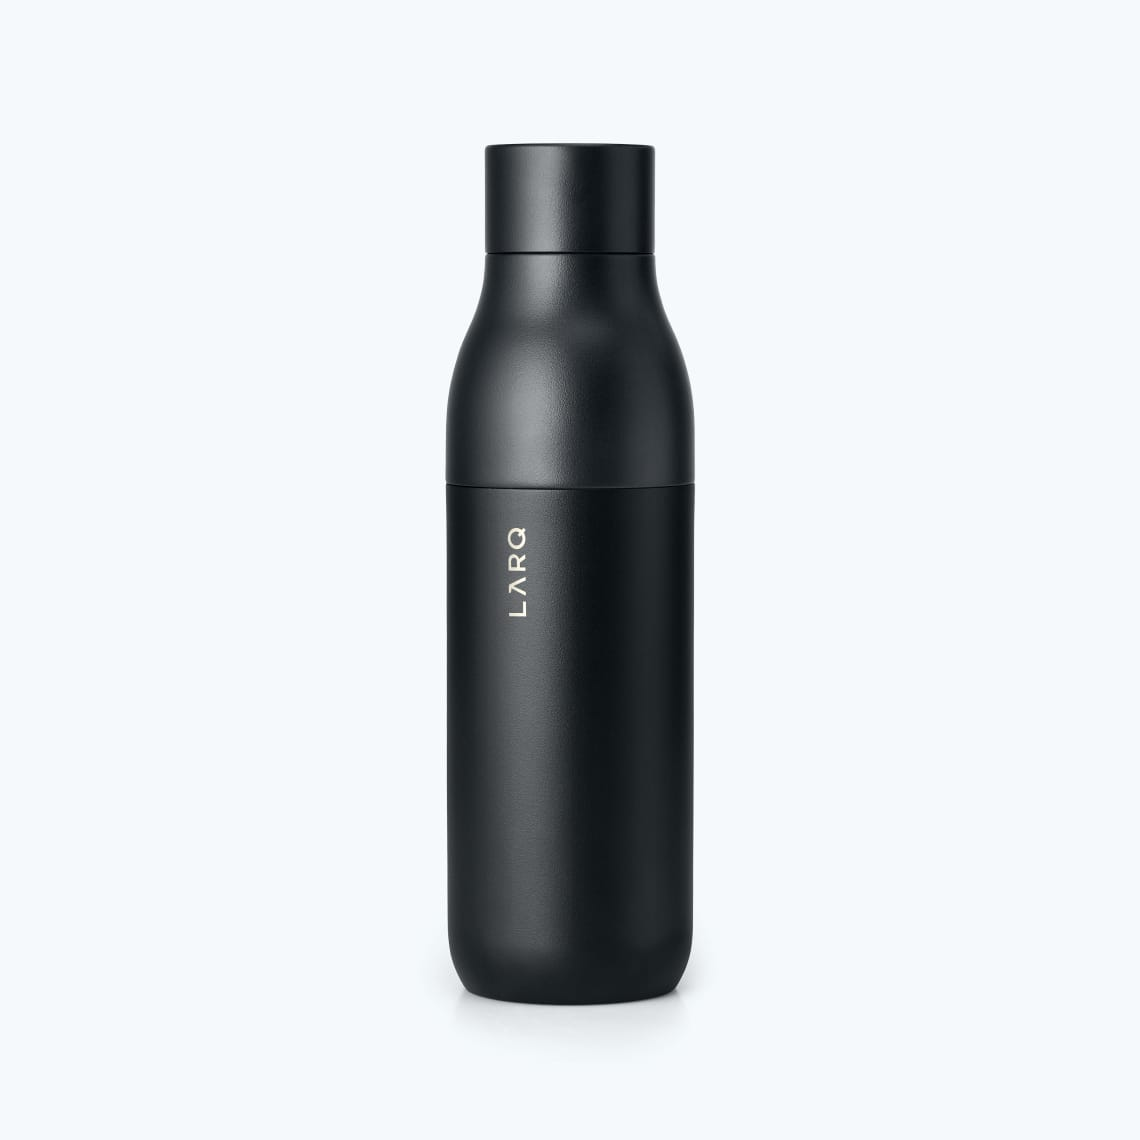 LARQ Bottle PureVis™ Obsidian Black secondary